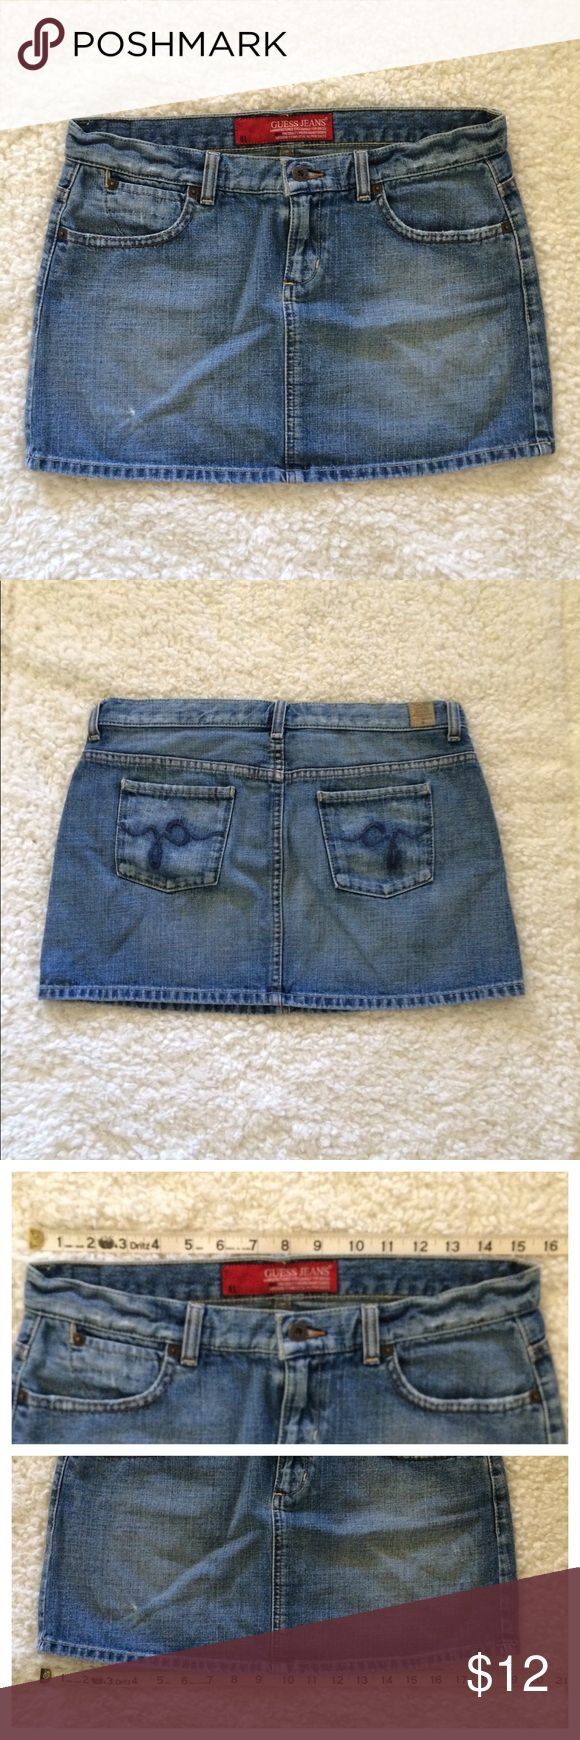 "Guess Jeans Denim Mini Skirt Size 28 Cute jean mini skirt in good used condition. Some frayed/distressed areas as shown in pictures. Waist: 15-1/2"". Length: 13-3/4"". Measurements are approximate. Guess Skirts Mini"